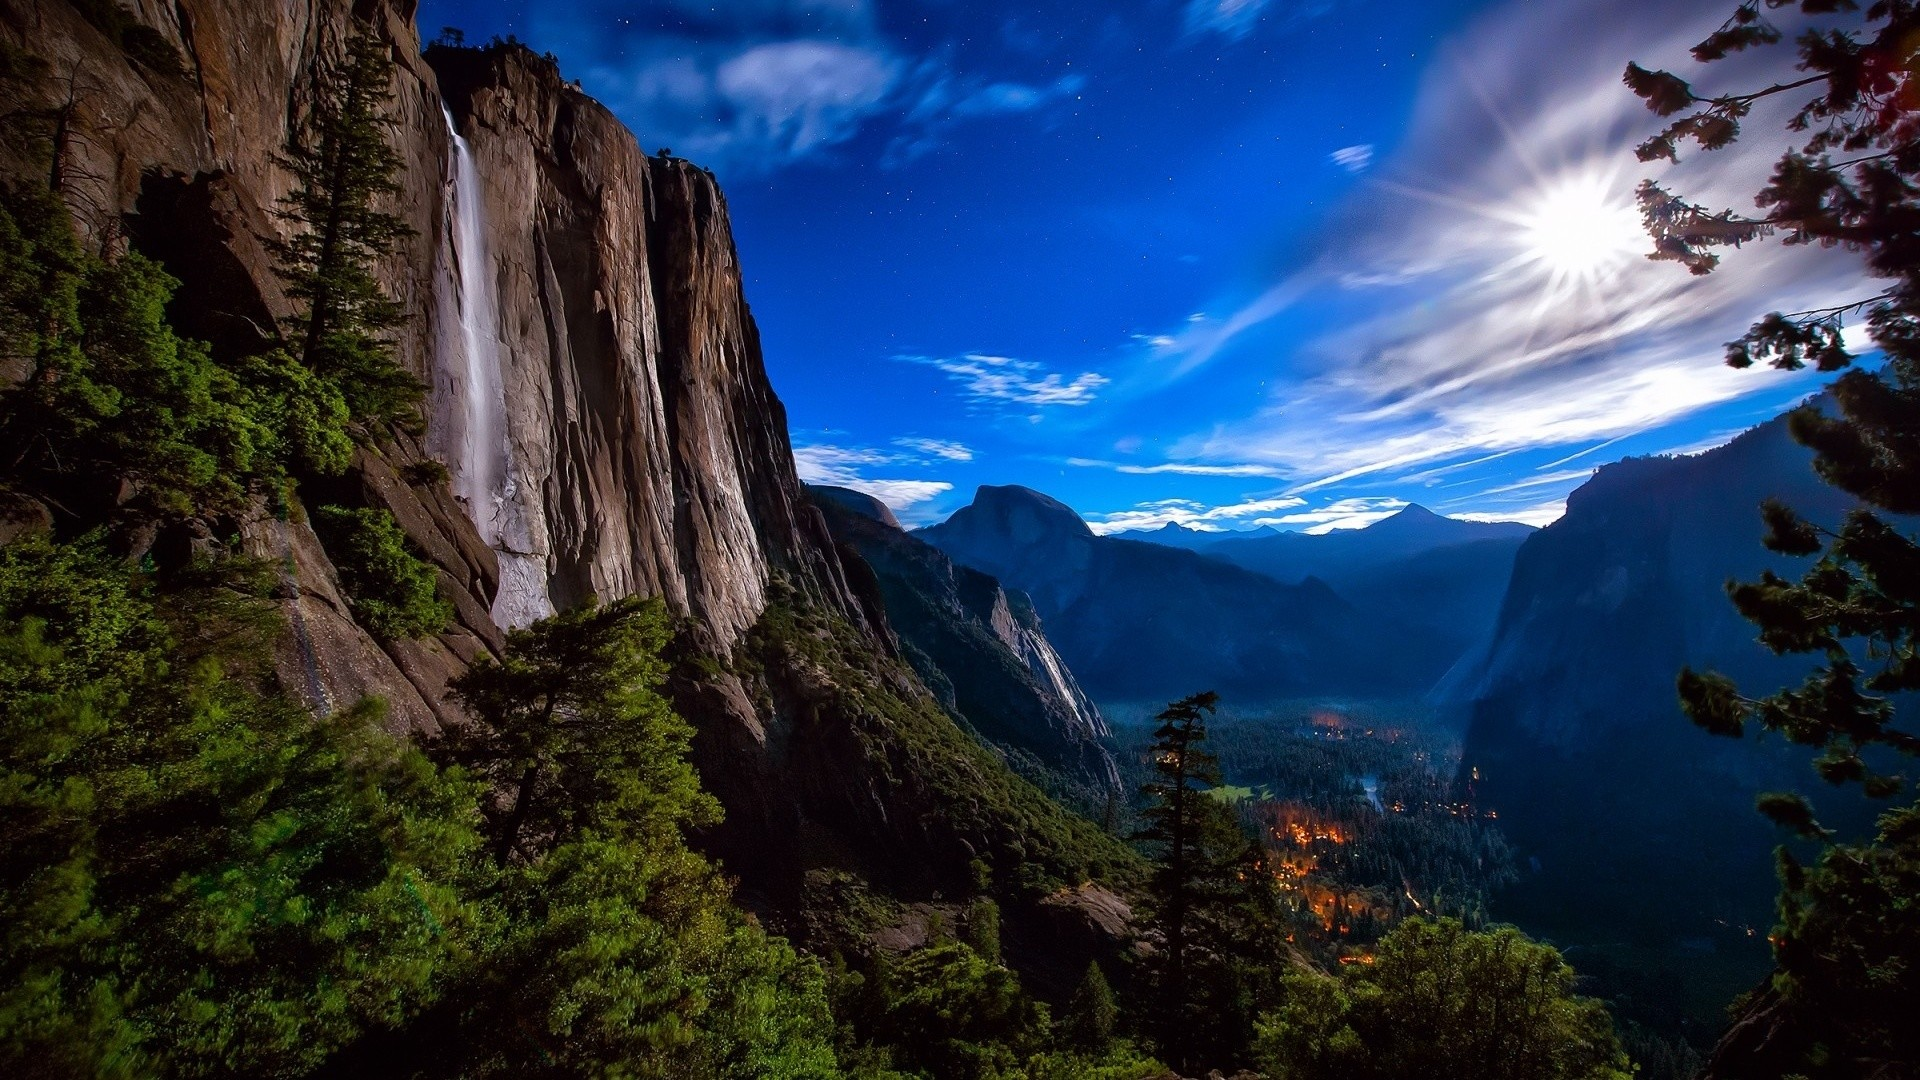 Res: 1920x1080, Yosemite 1080p Wallpaper Widescreen High Quality For Mobile Hd Page Of